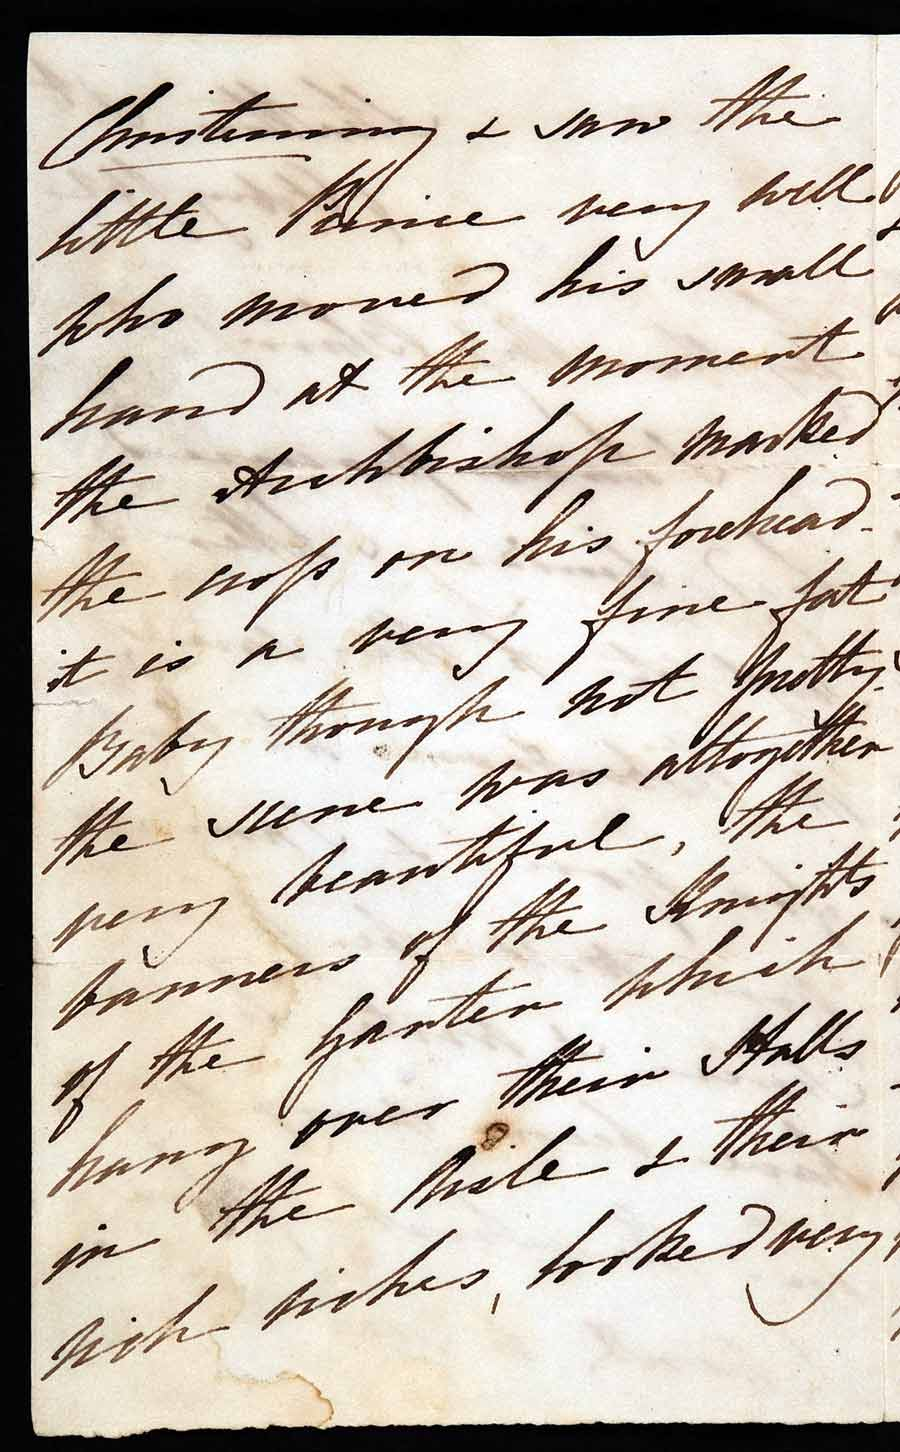 Partial letter. Angela Burdett-Coutts (1801–1899), 1 Stratton Street, London, 4 February 1842.